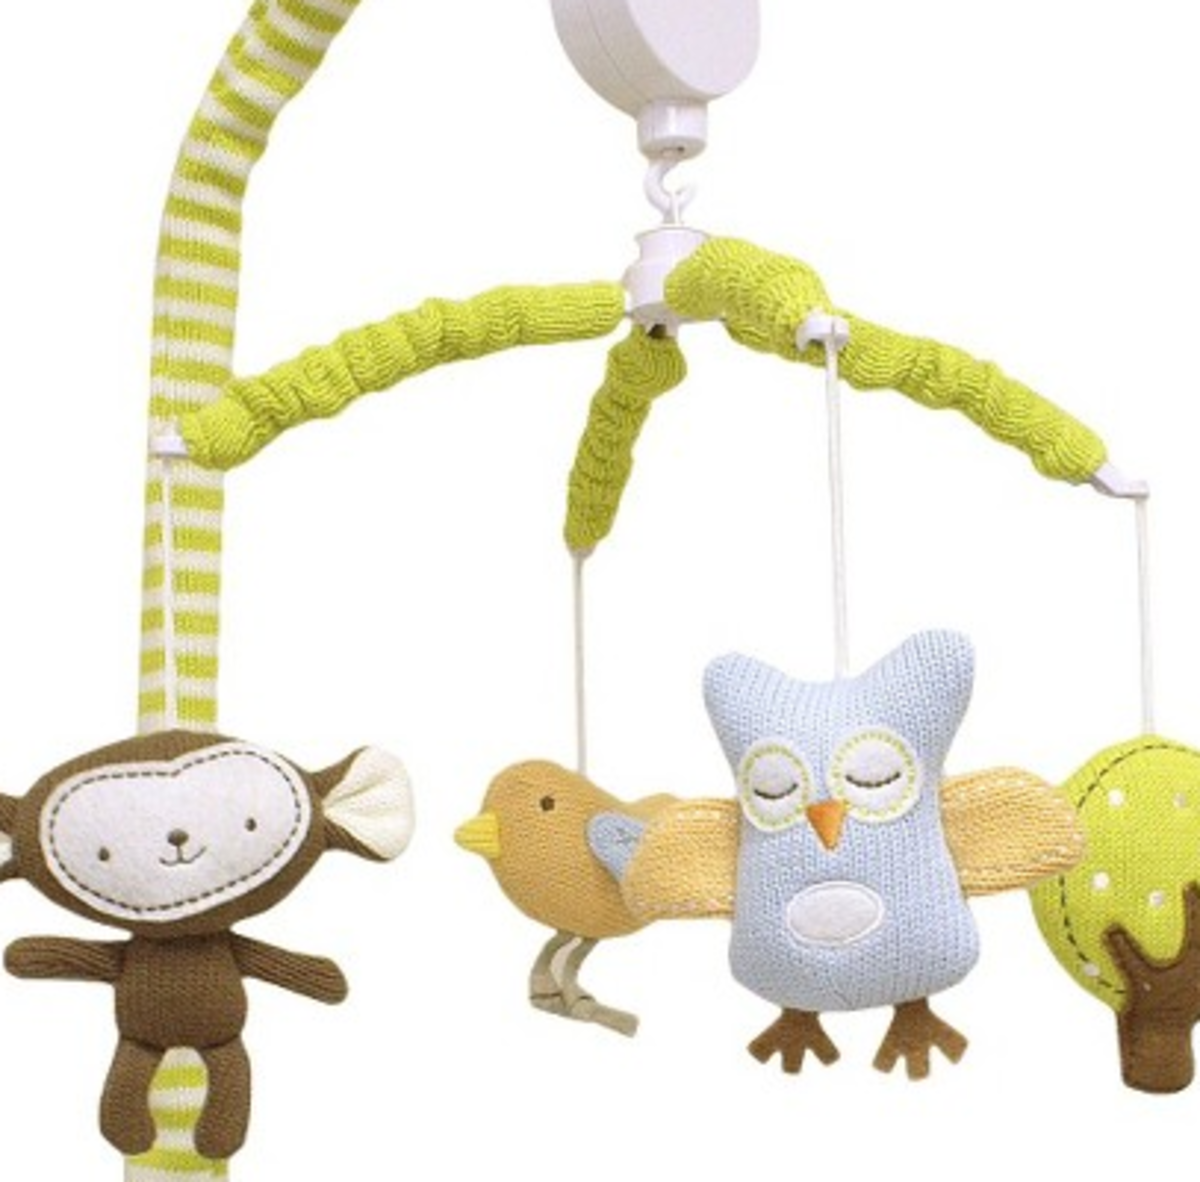 I Love The Knit Look Of The Adorable Lolli Living Monkey Mobile. It Has A  Lovely Handmade Look.